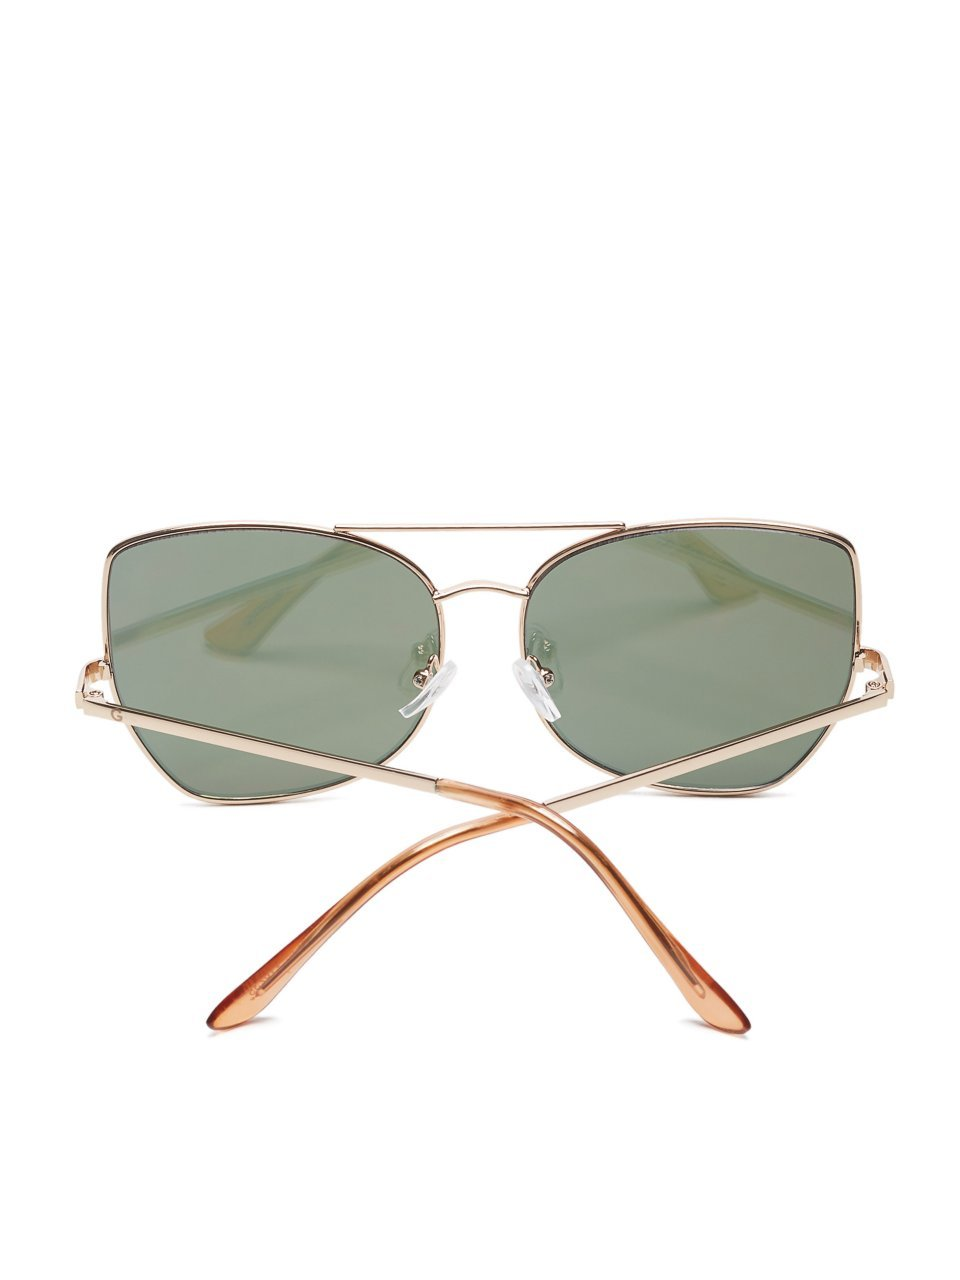 G by GUESS Women's Mirrored Top Bar Sunglasses by G by GUESS (Image #3)